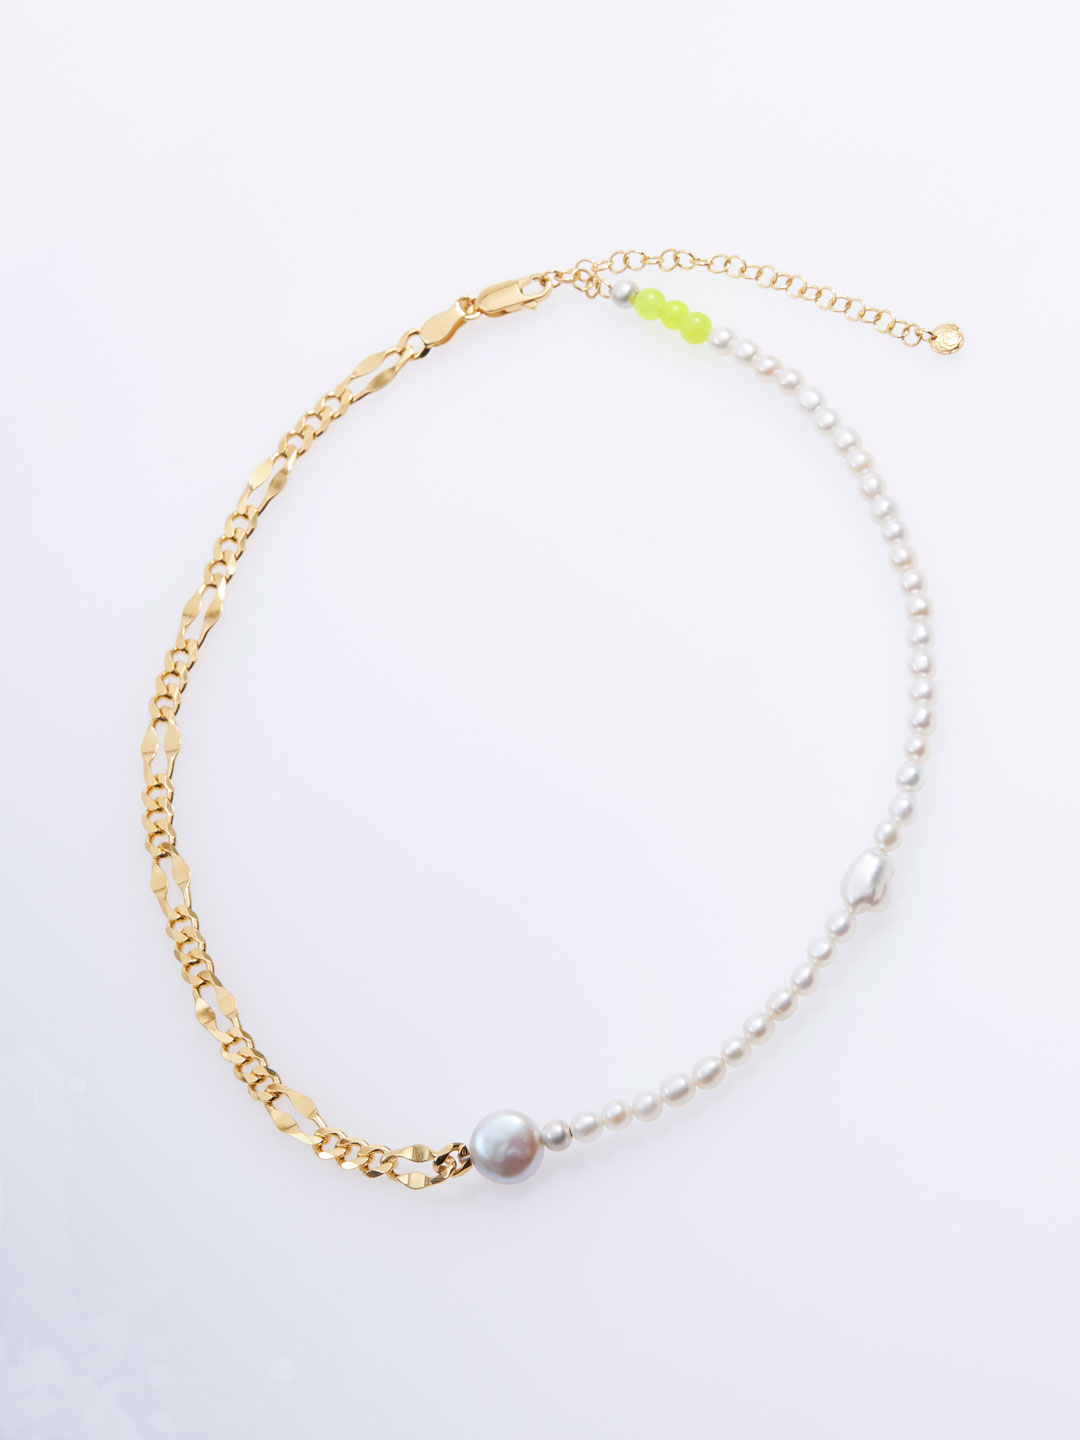 Positano Necklace  - Yellow Gold